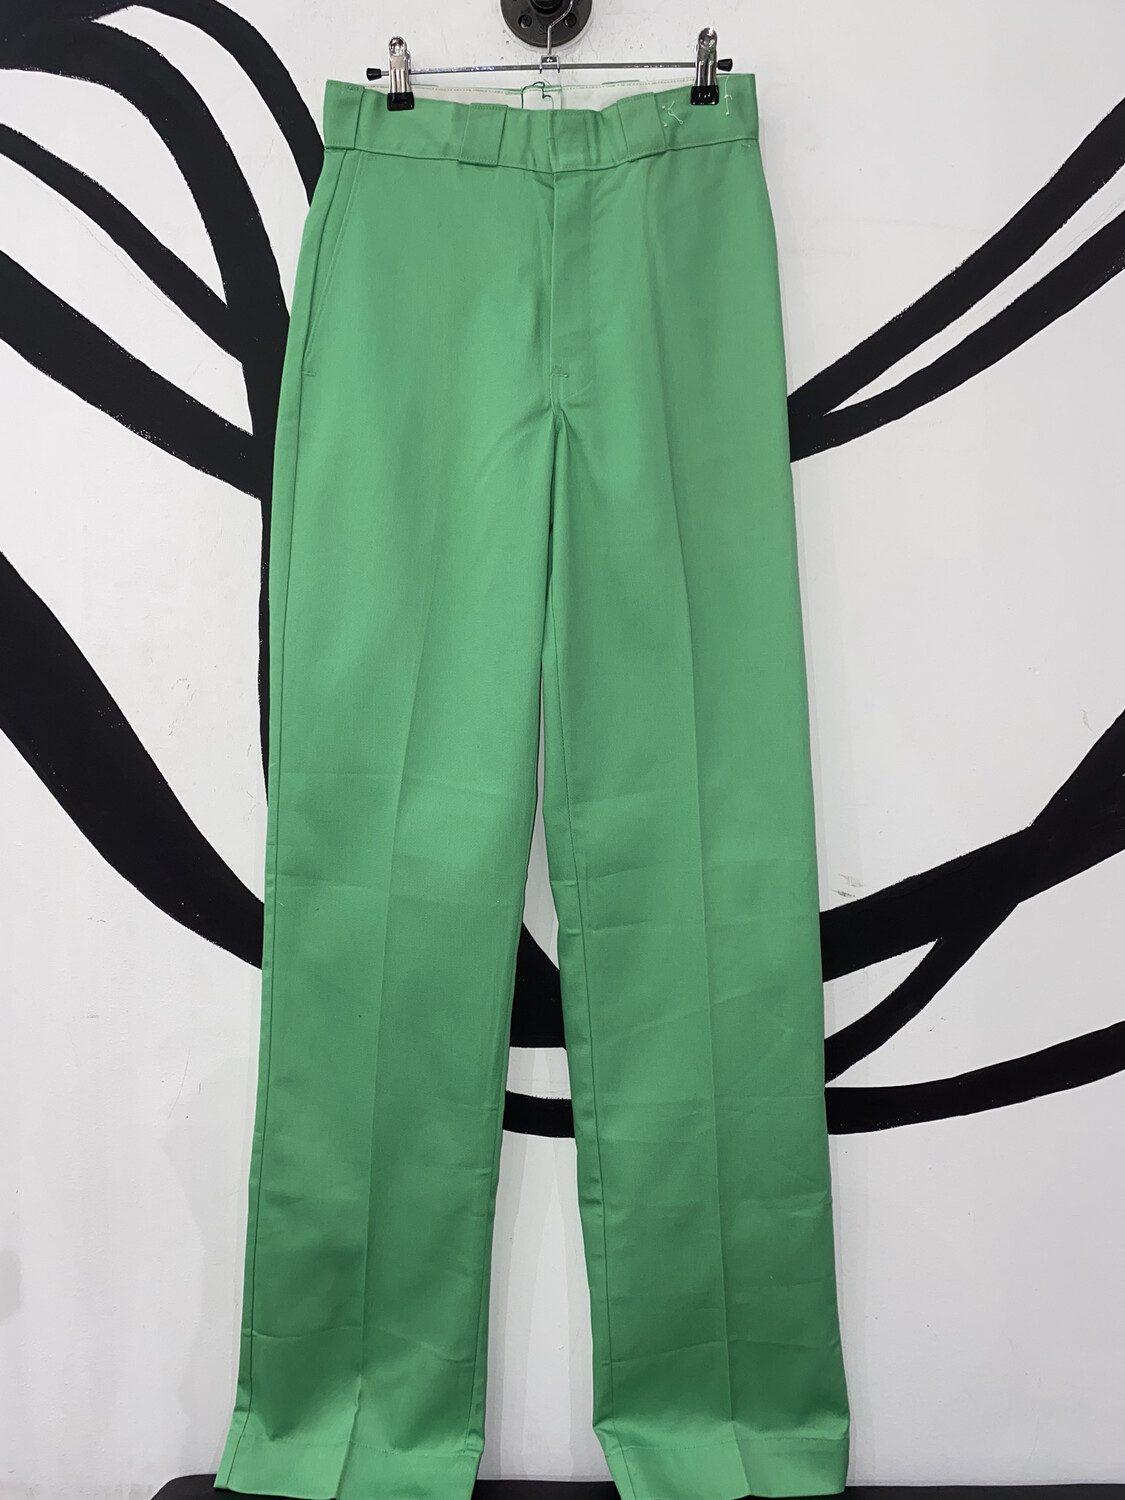 Dickies Pants Size 28x36